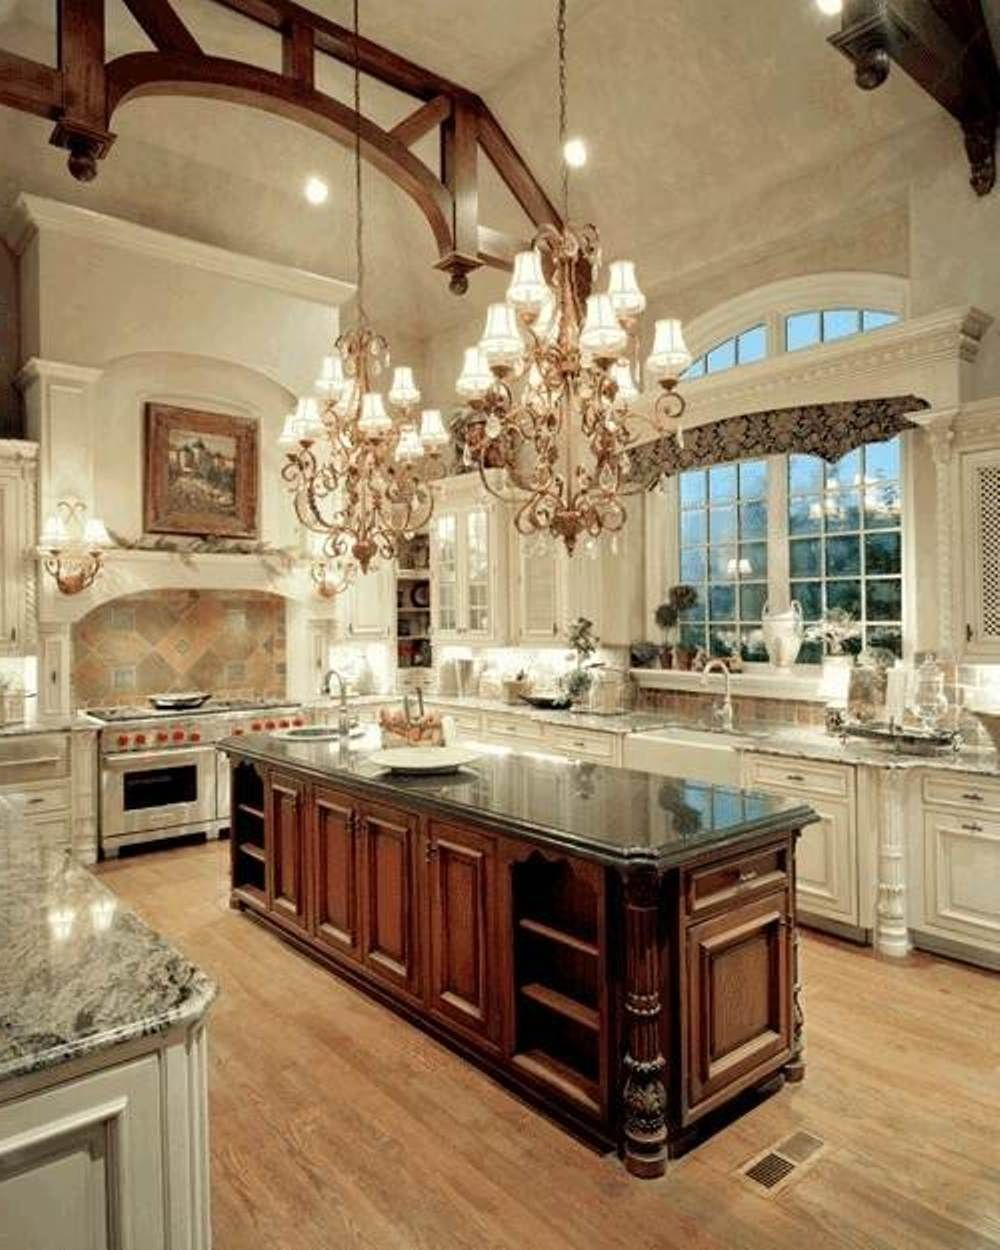 25 Lighting Ideas For The Kitchen: Functional And Aesthetic Ceiling Lights For Kitchen In